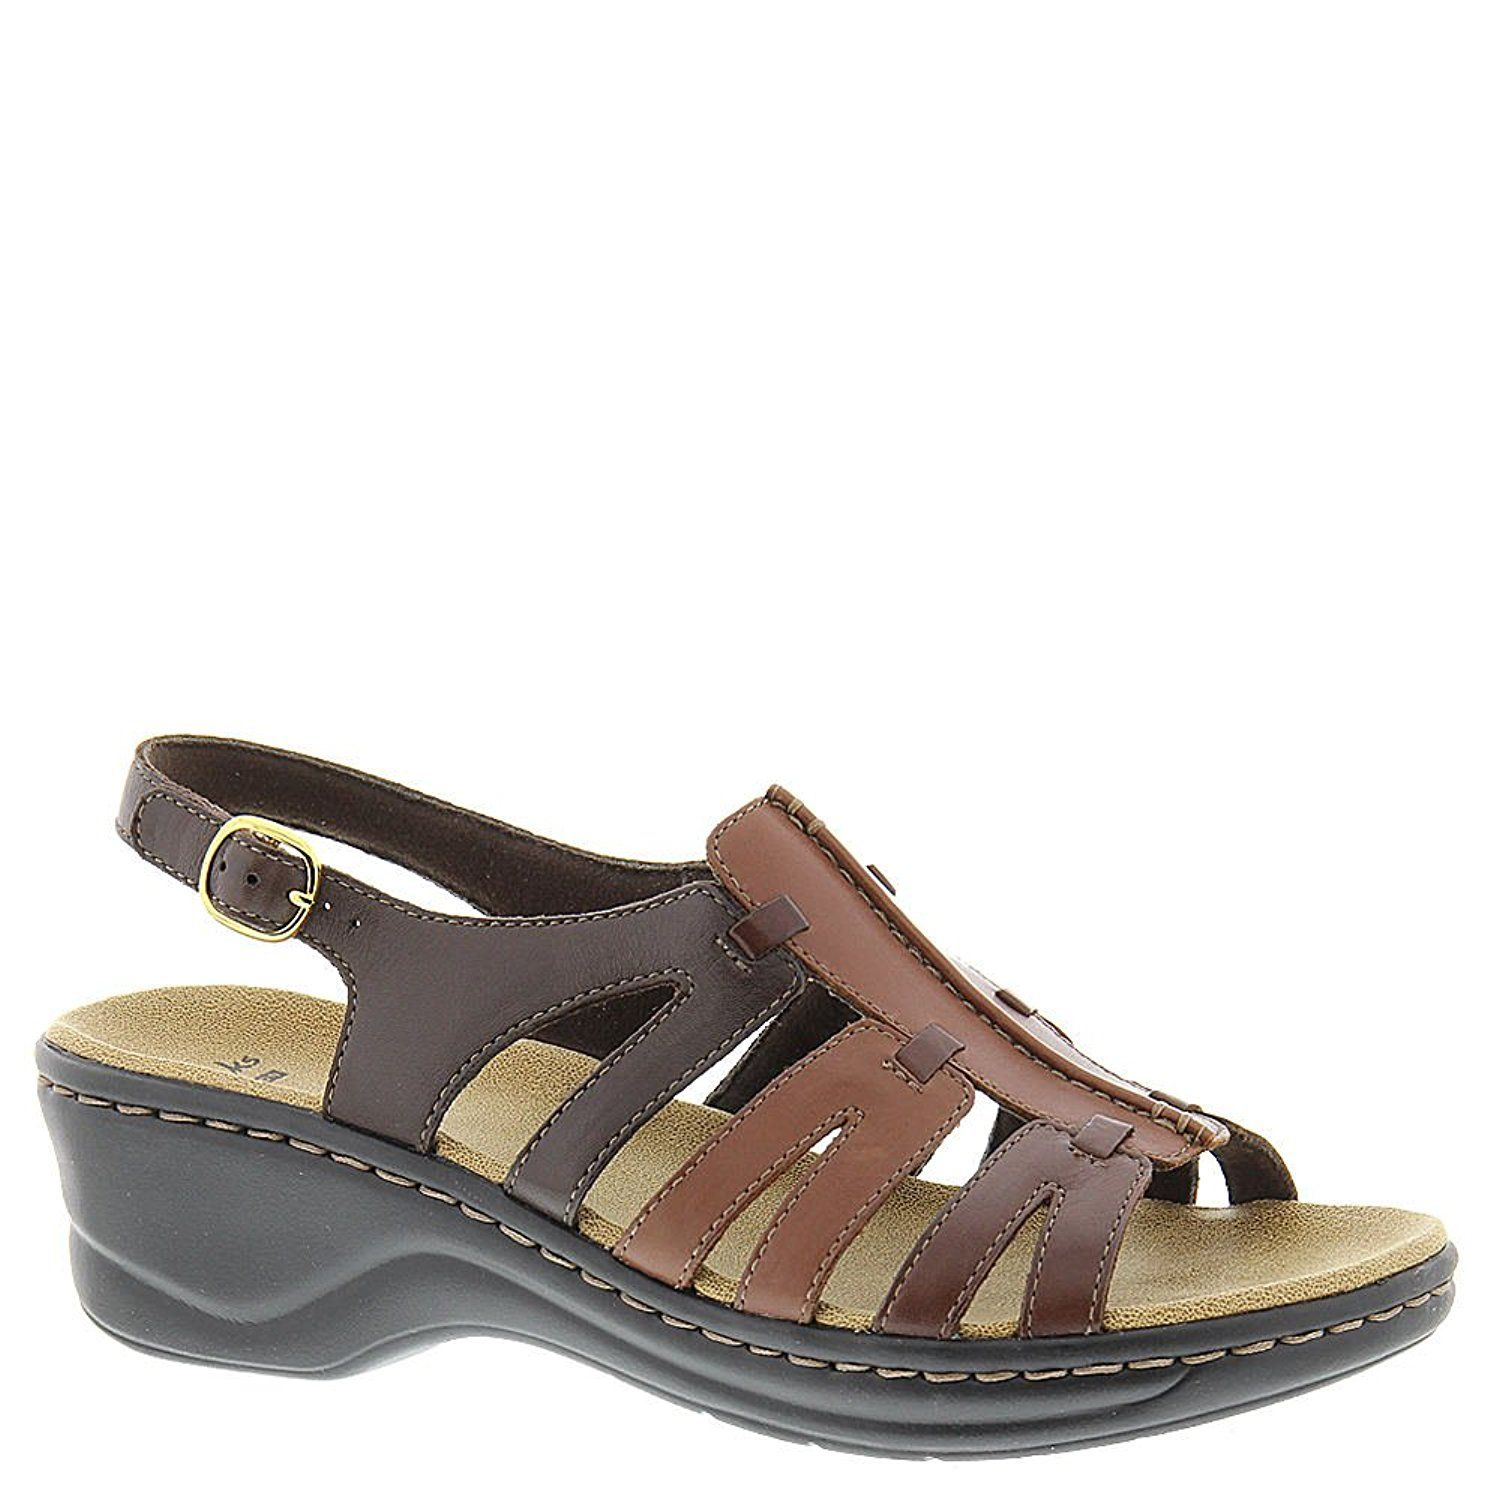 2dfdb6e8406ac Clarks Women s Lexi Marigold Q Brown Multi Leather Sandal 5.5 B (M)     Click on the image for additional details.